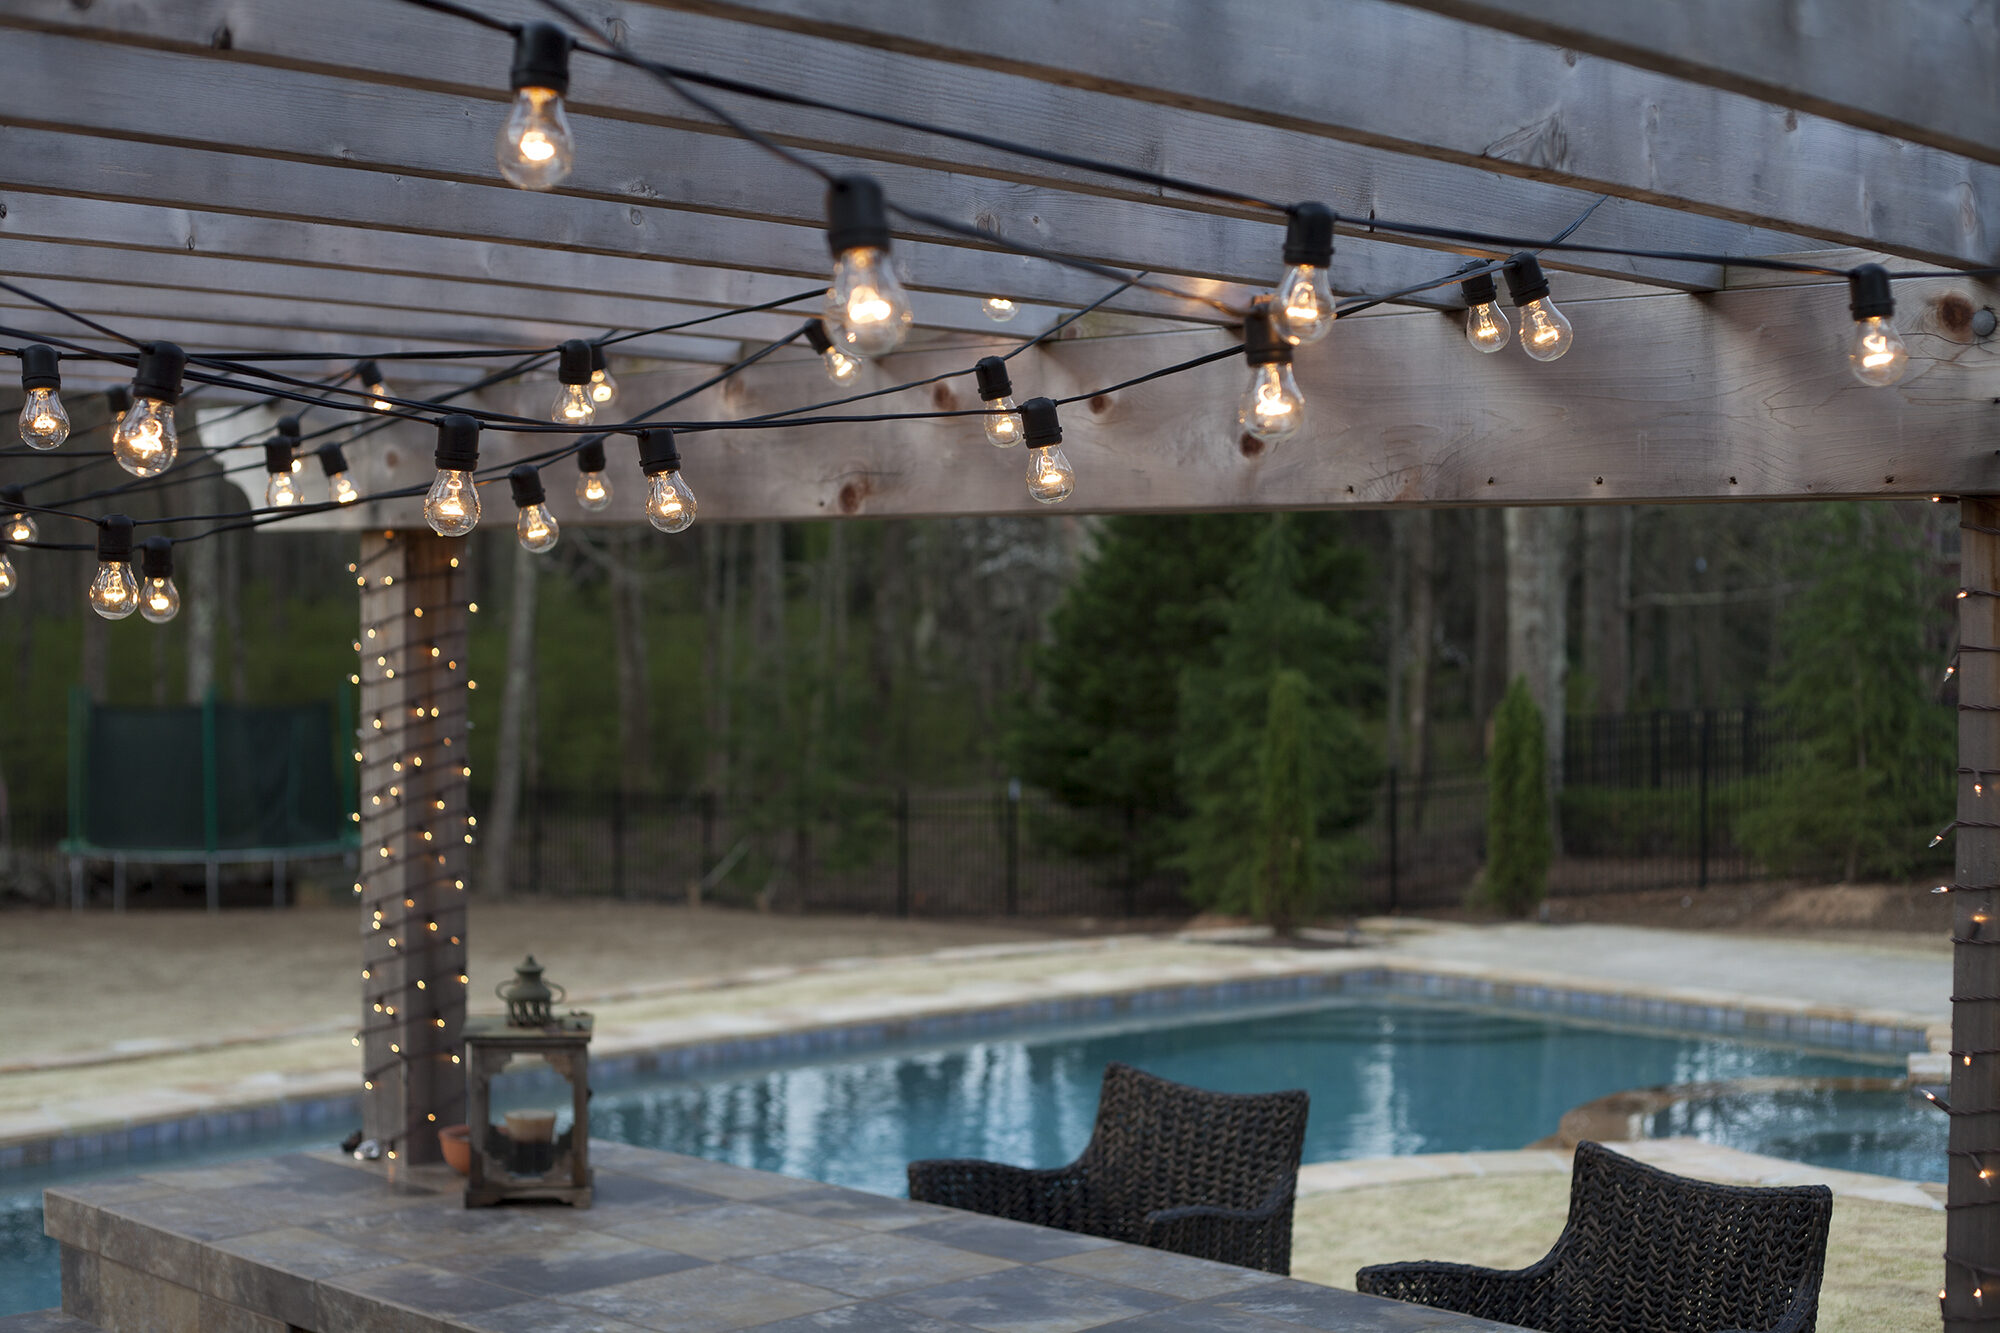 Best Way To Hang String Lights On Deck : Hanging Patio String Lights: A Pattern of Perfection - Yard Envy